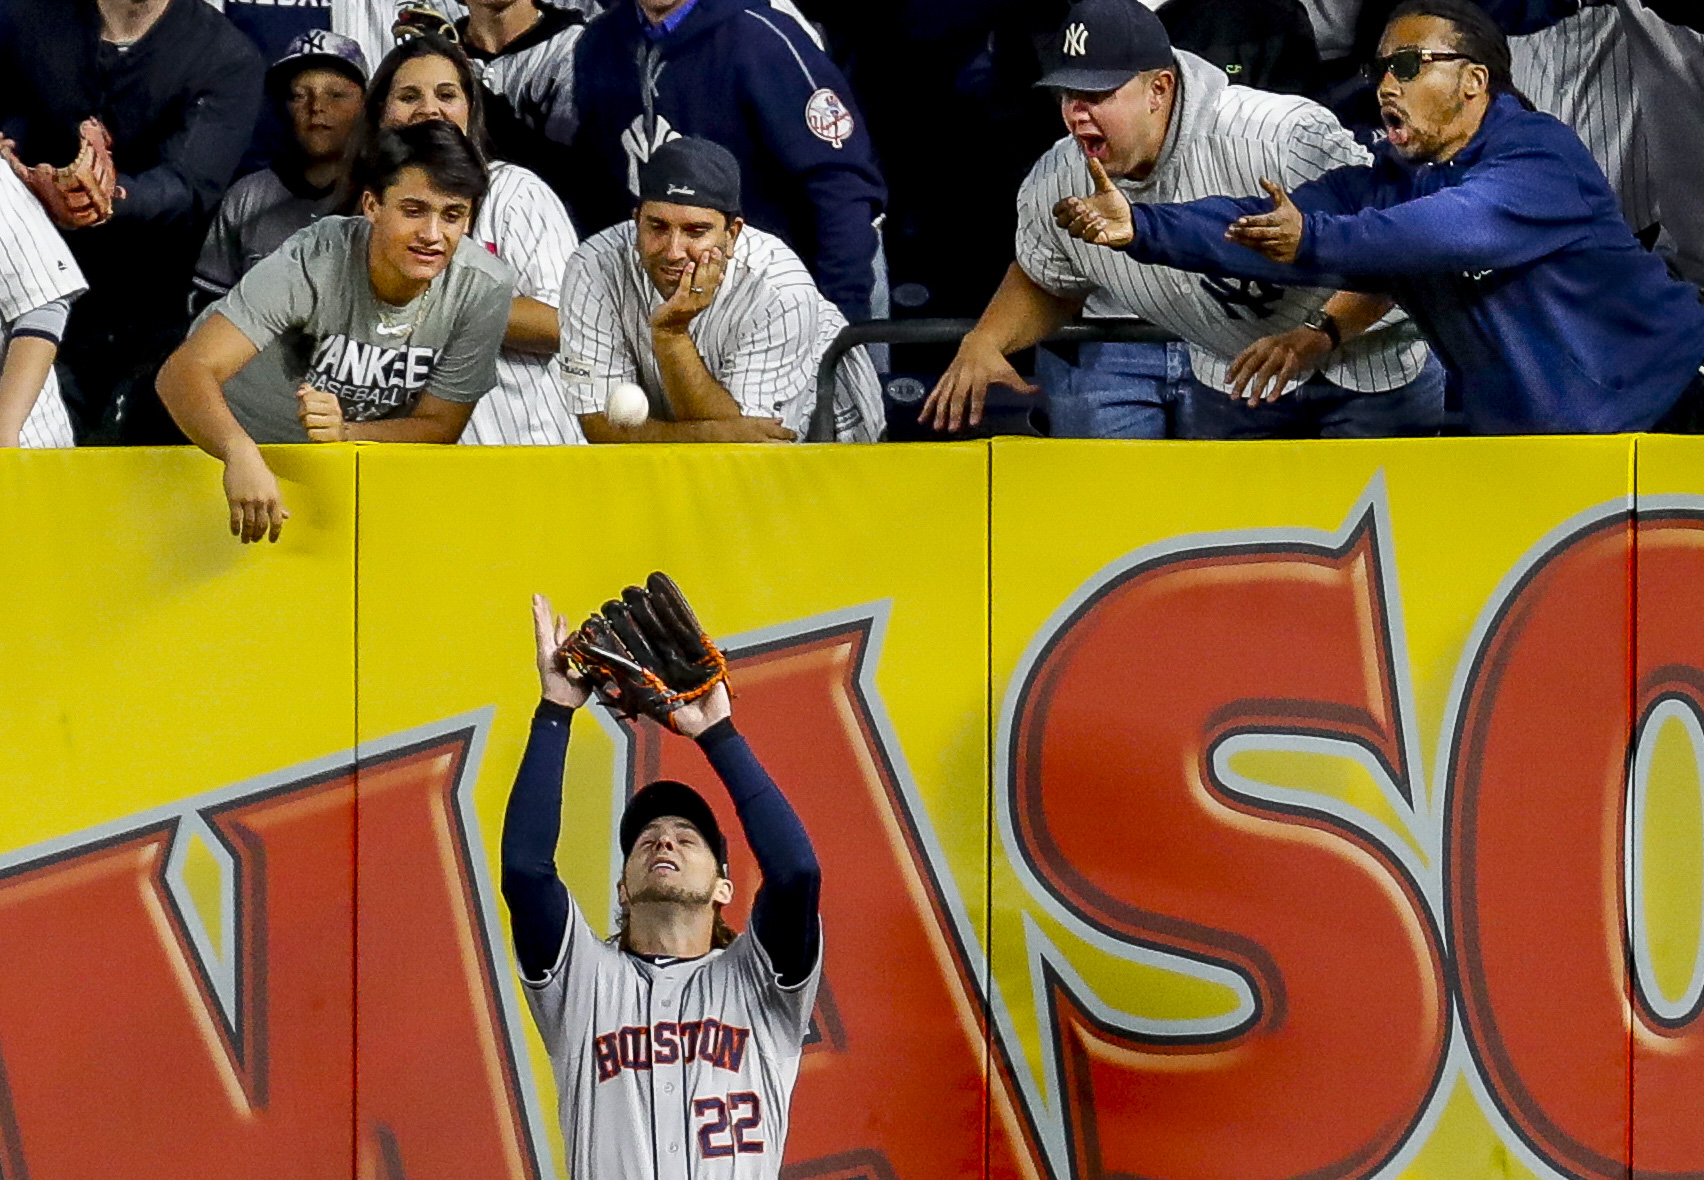 How to get a full-size print of Reddick's catch in Game 3 of the ALCS for $2